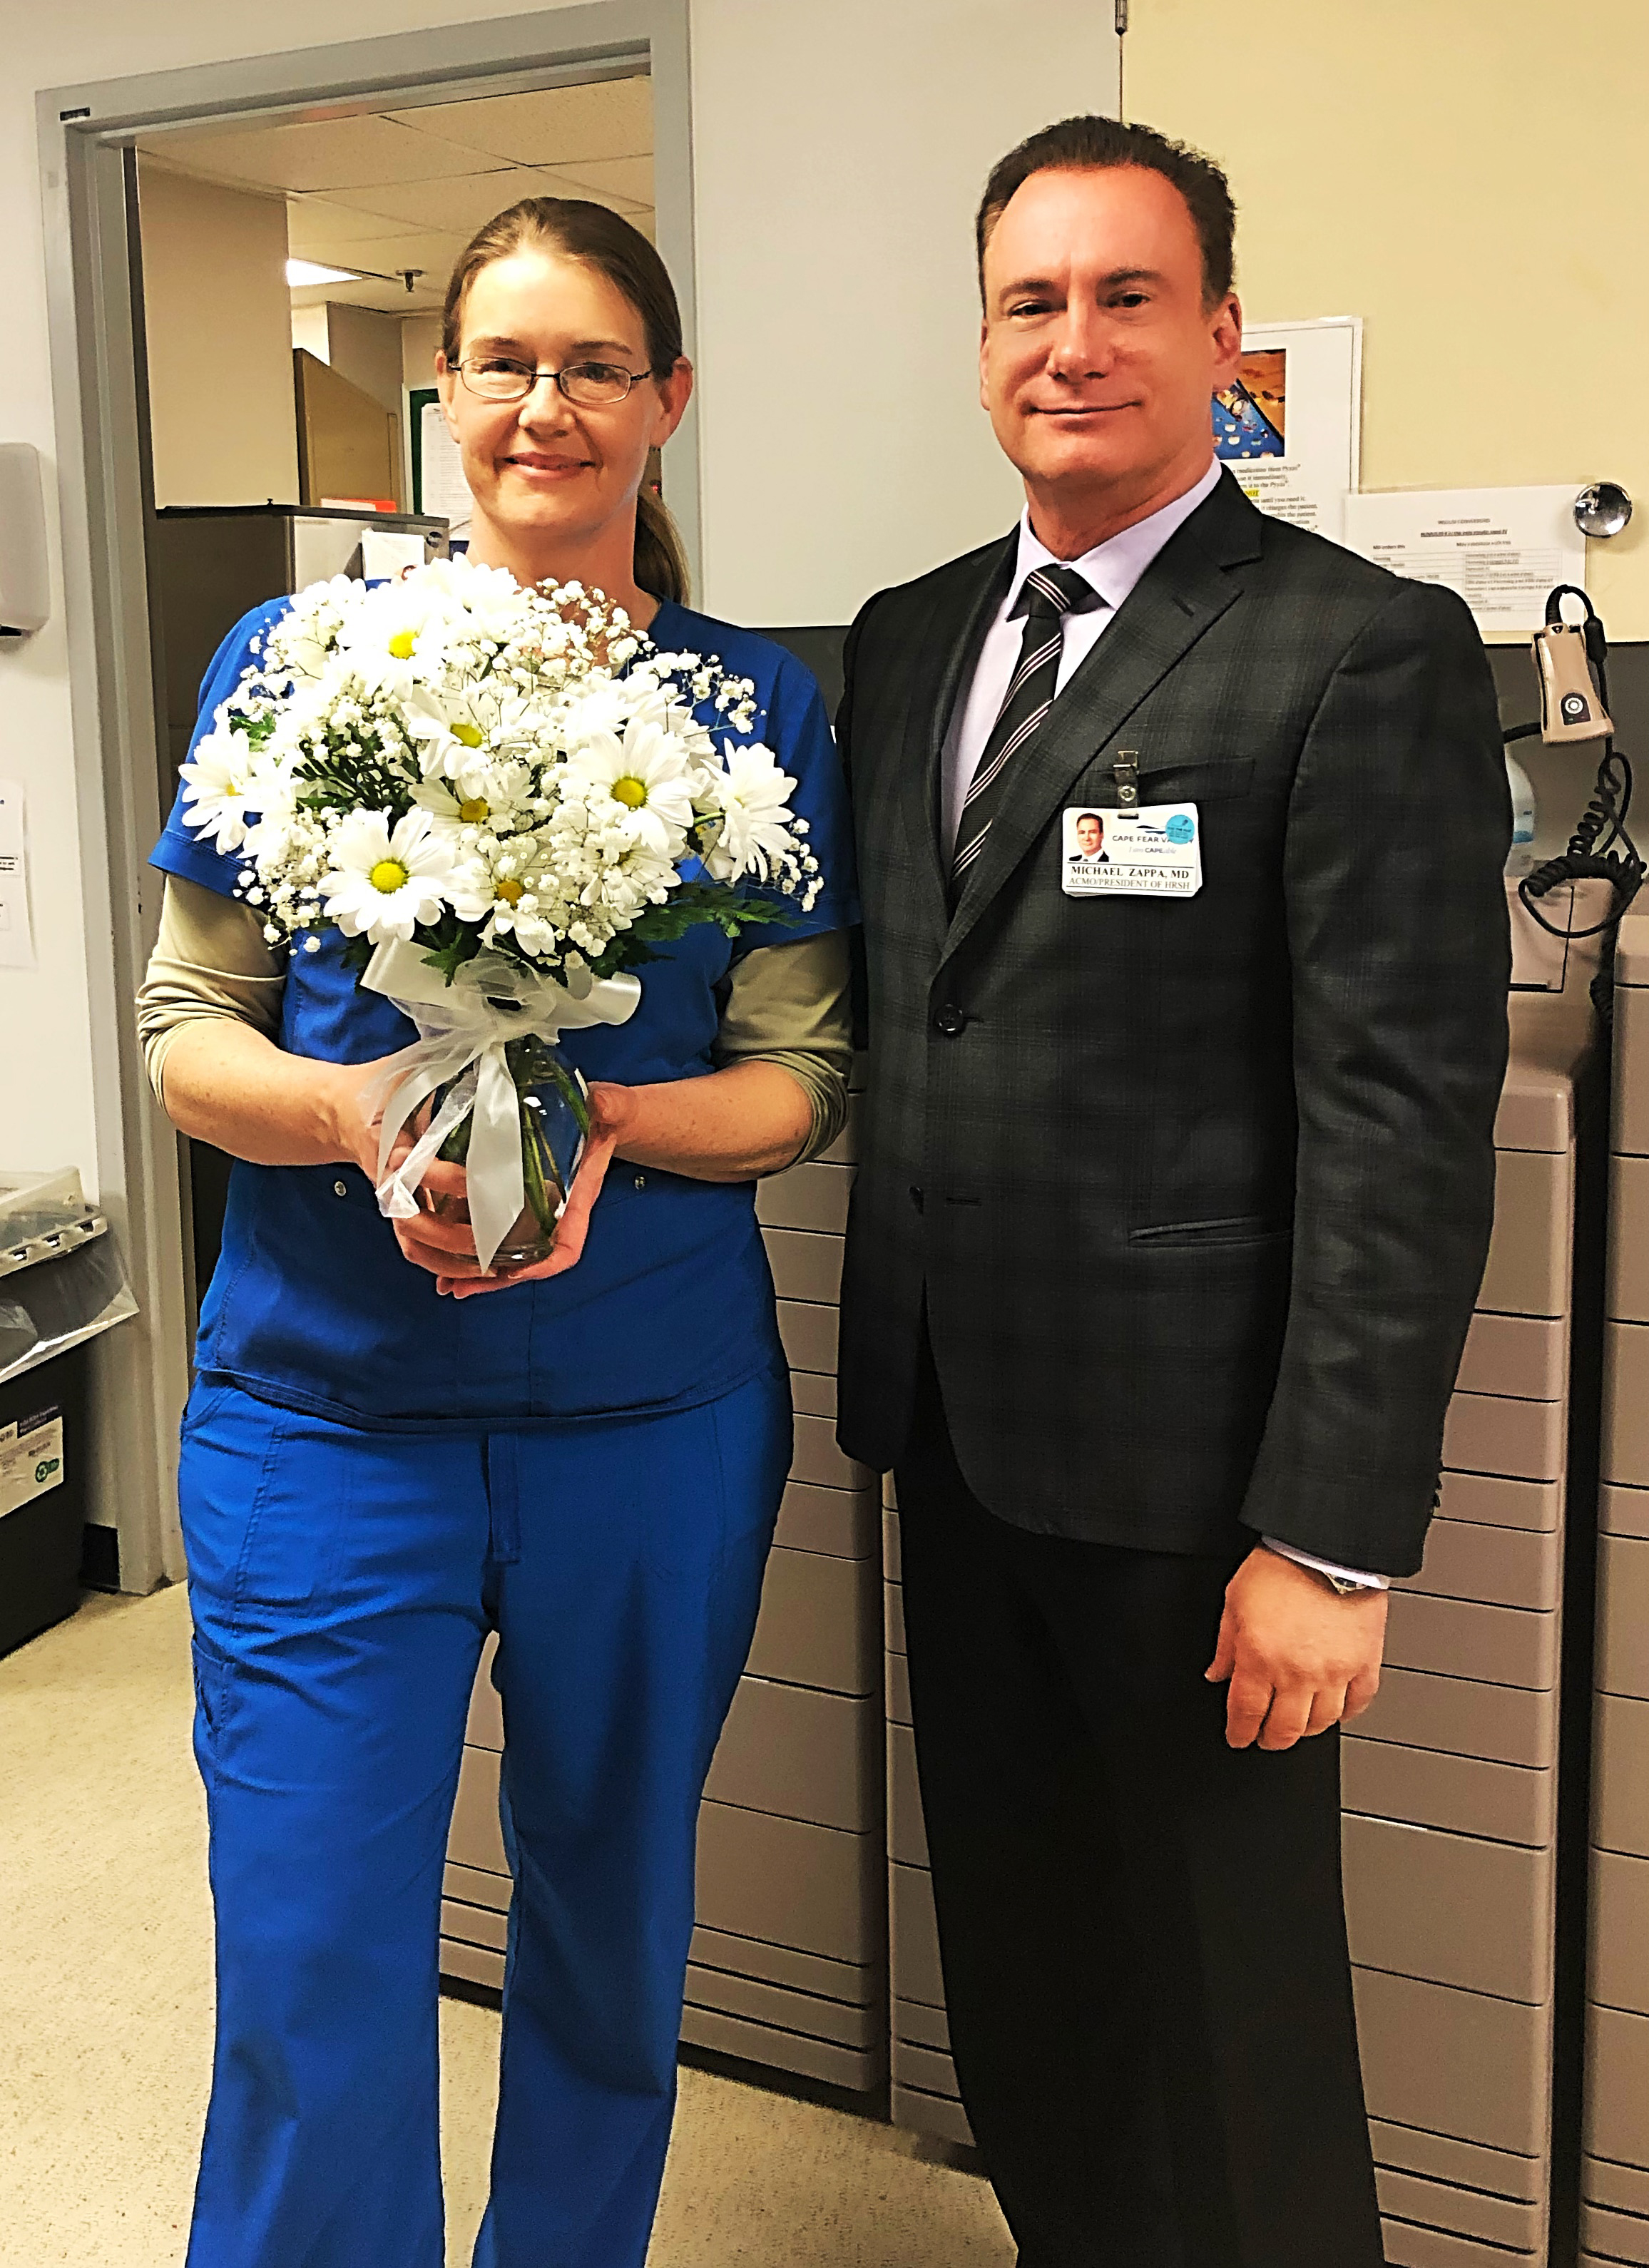 Mary Maset, RN with Dr. Michael Zappa as she receives the DAISY Award.